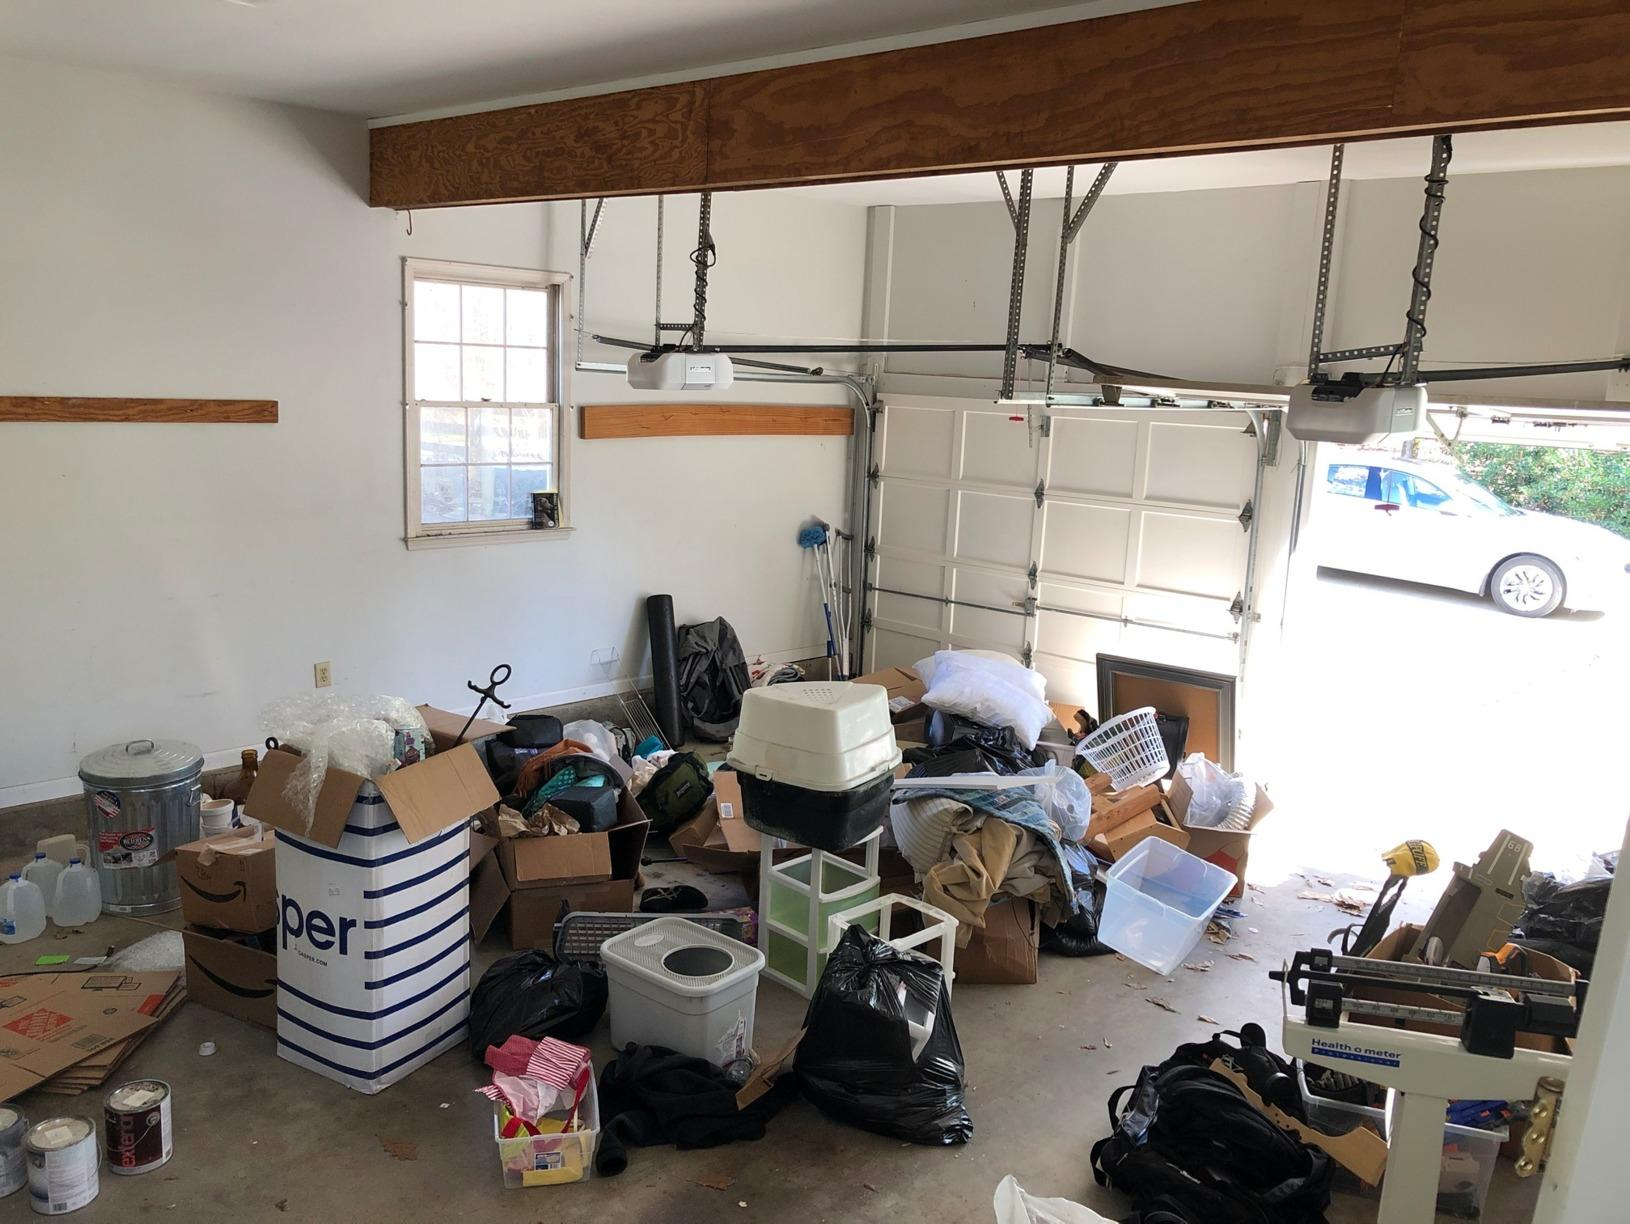 Garage Junk Removal in Cumming, GA - Before Photo